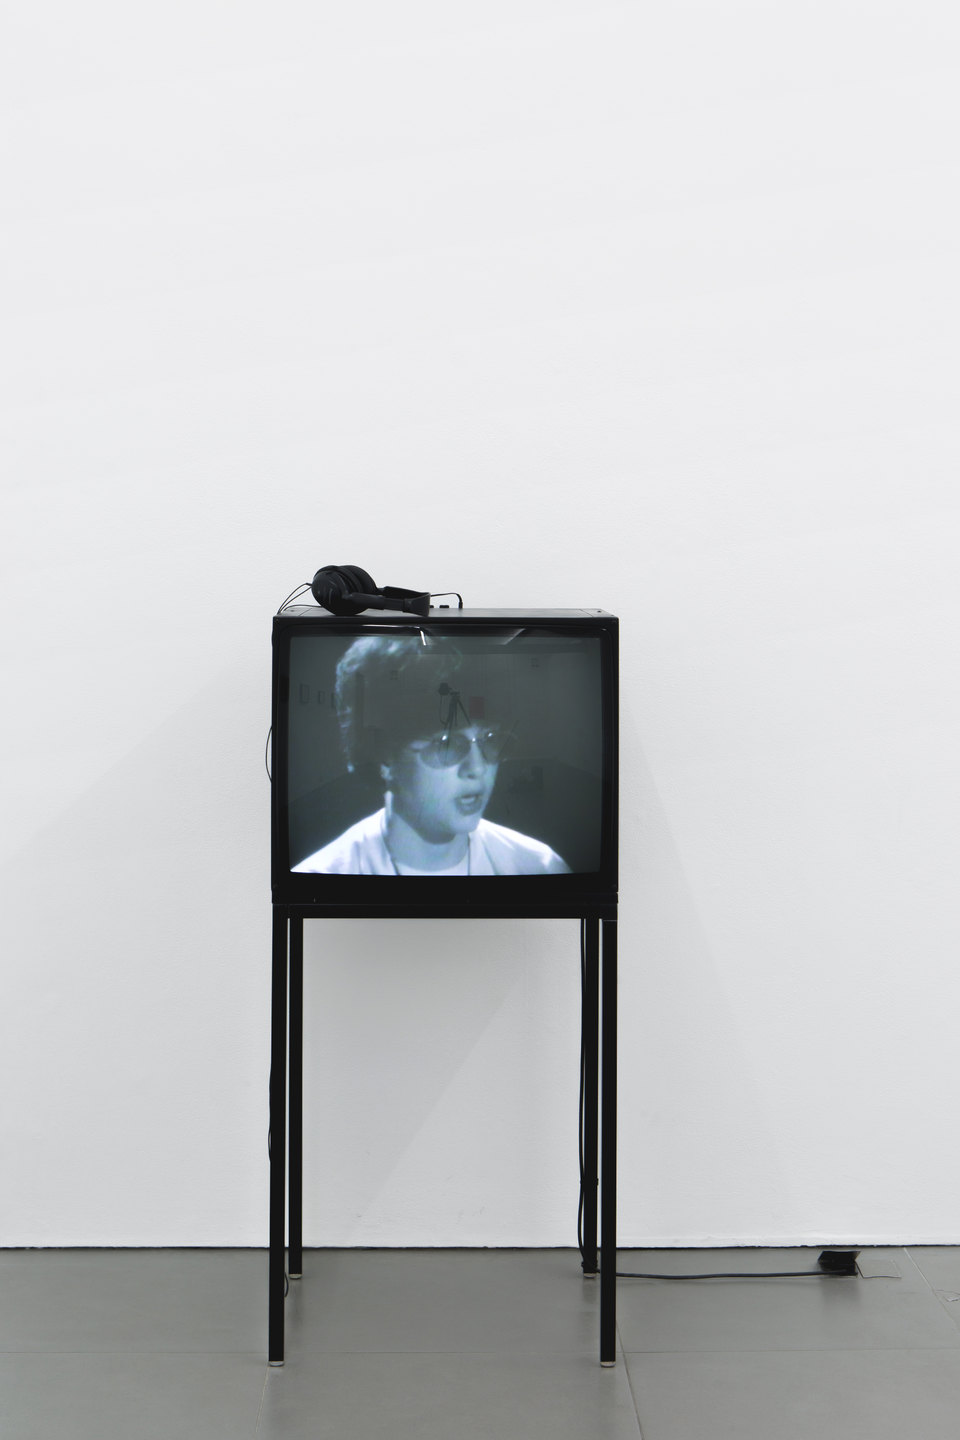 Kathy Acker, 'Raw Heat', 1977 (video), Perverts, 2017, Cell Project Space